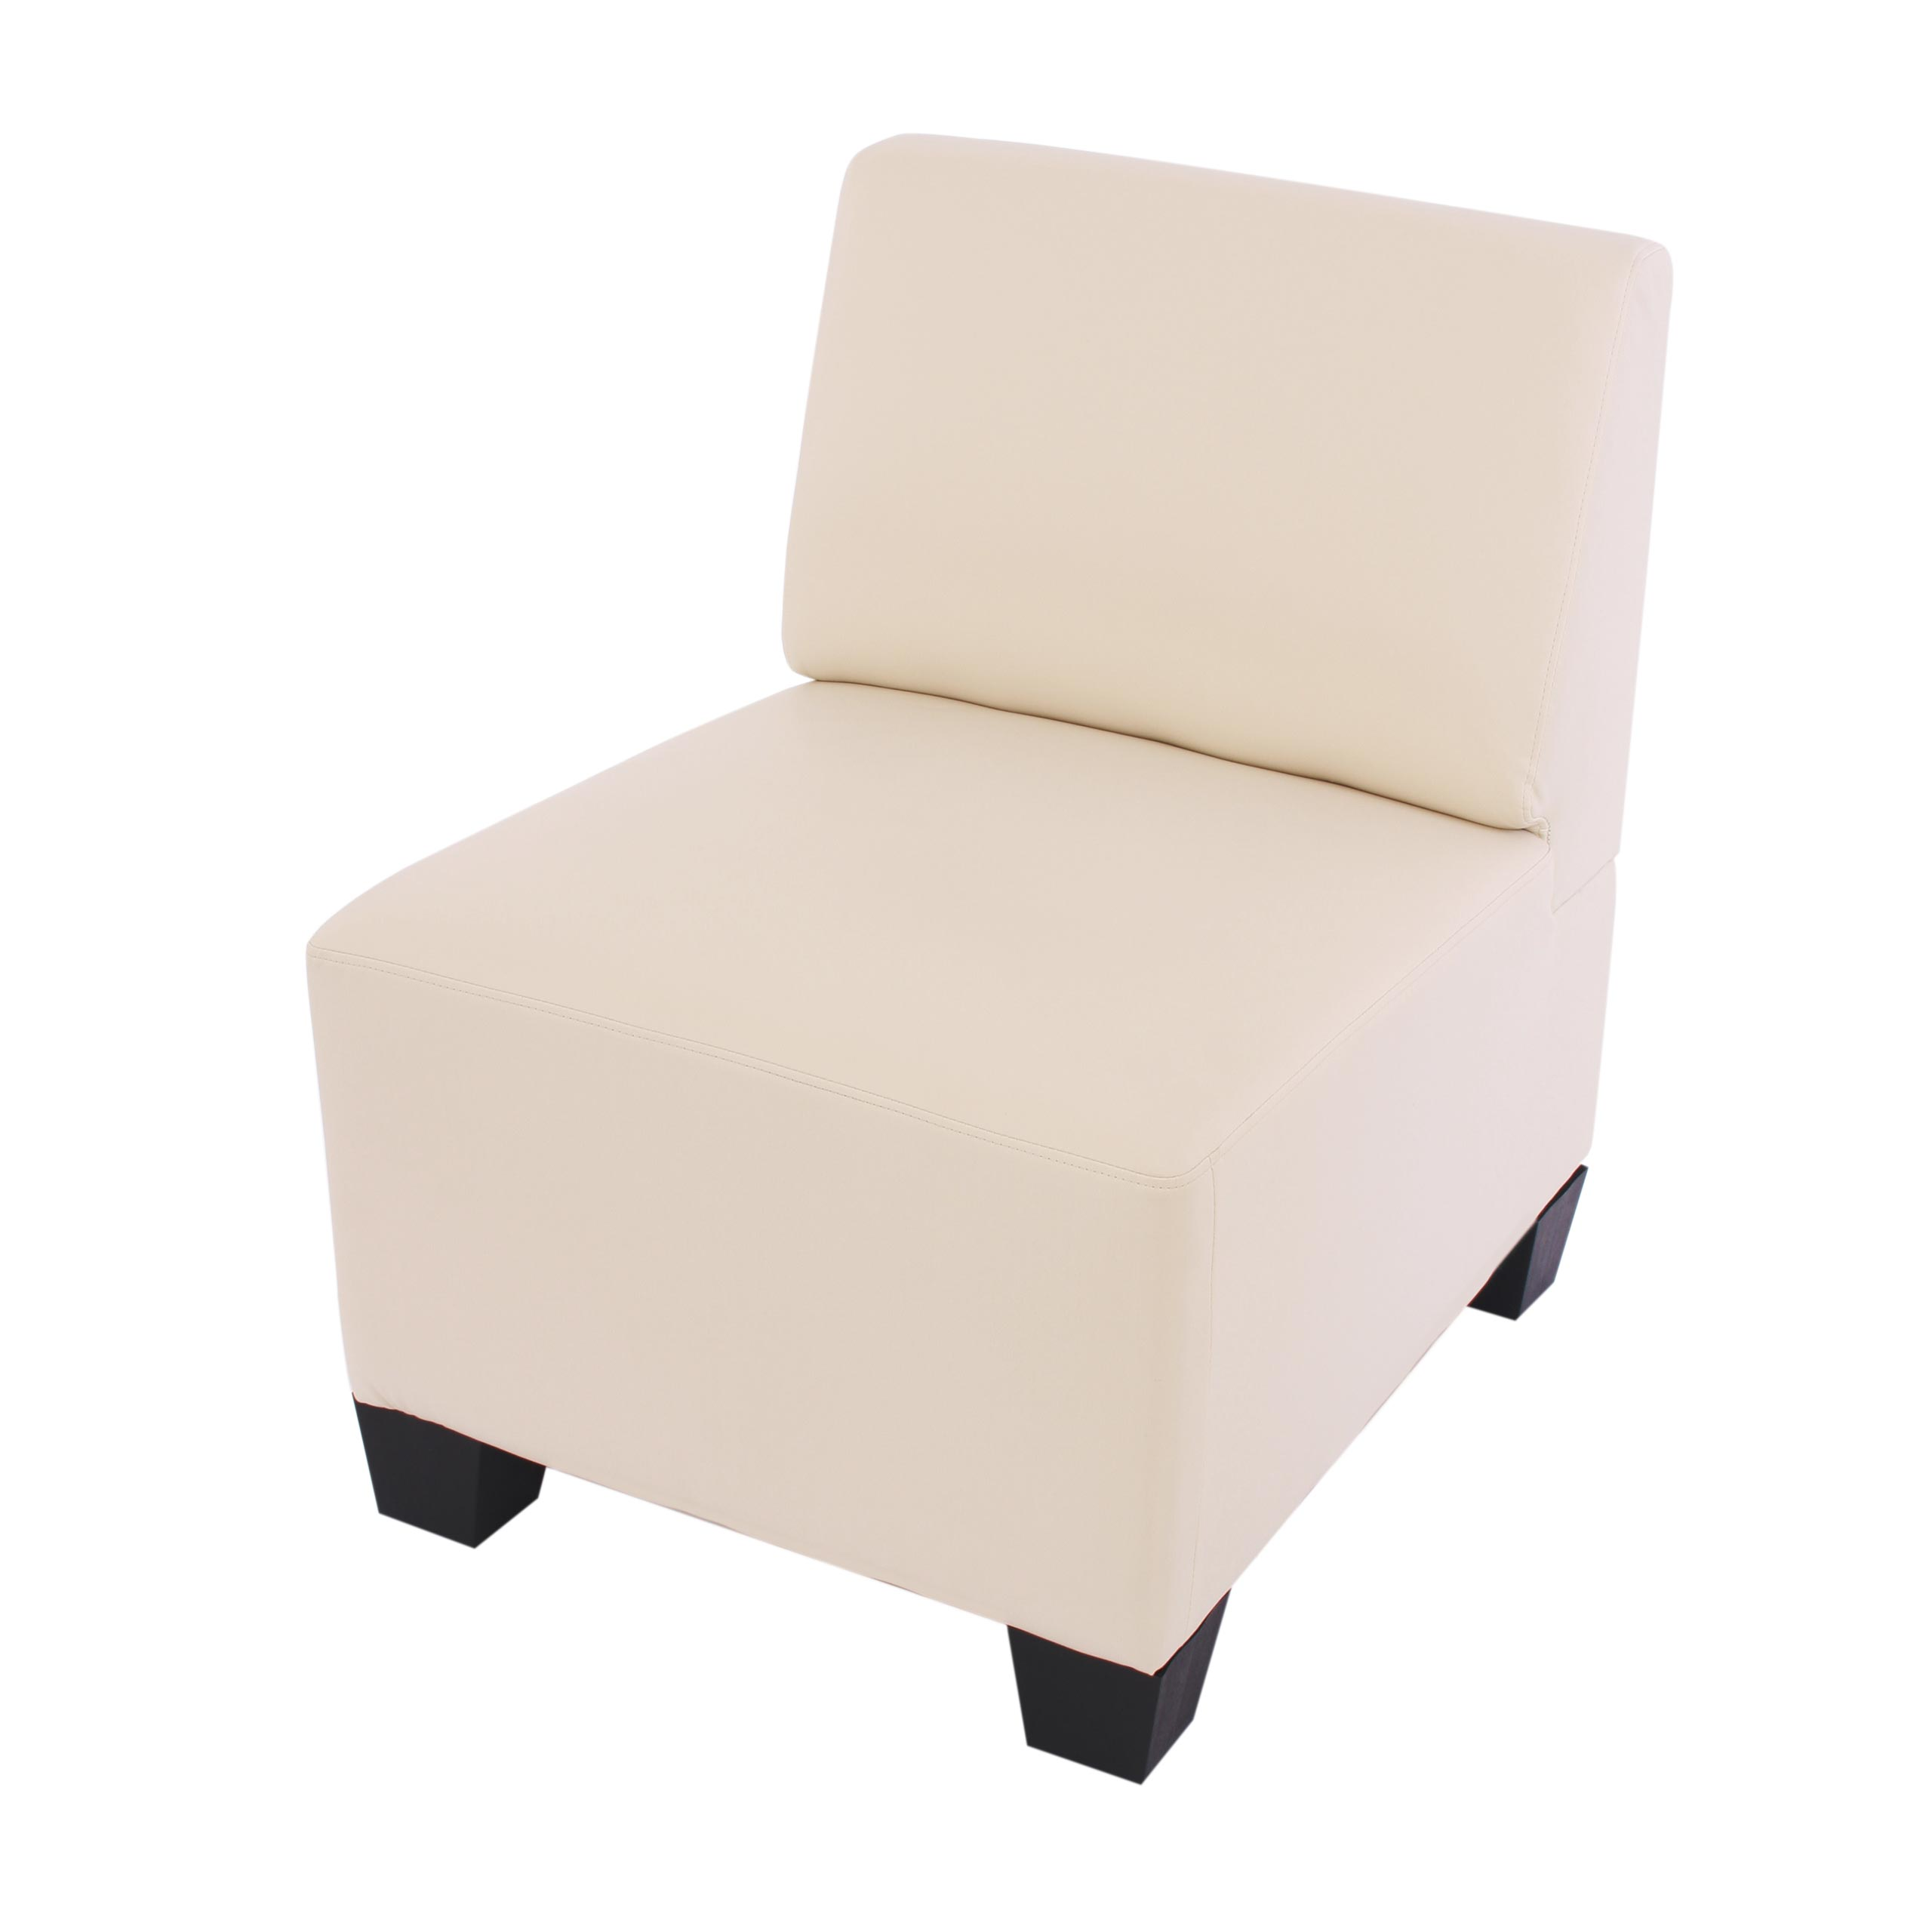 Canape cuir 3 places amovibles blanc creme cpe3pc amov ad for Monsieur meuble canape cuir blanc